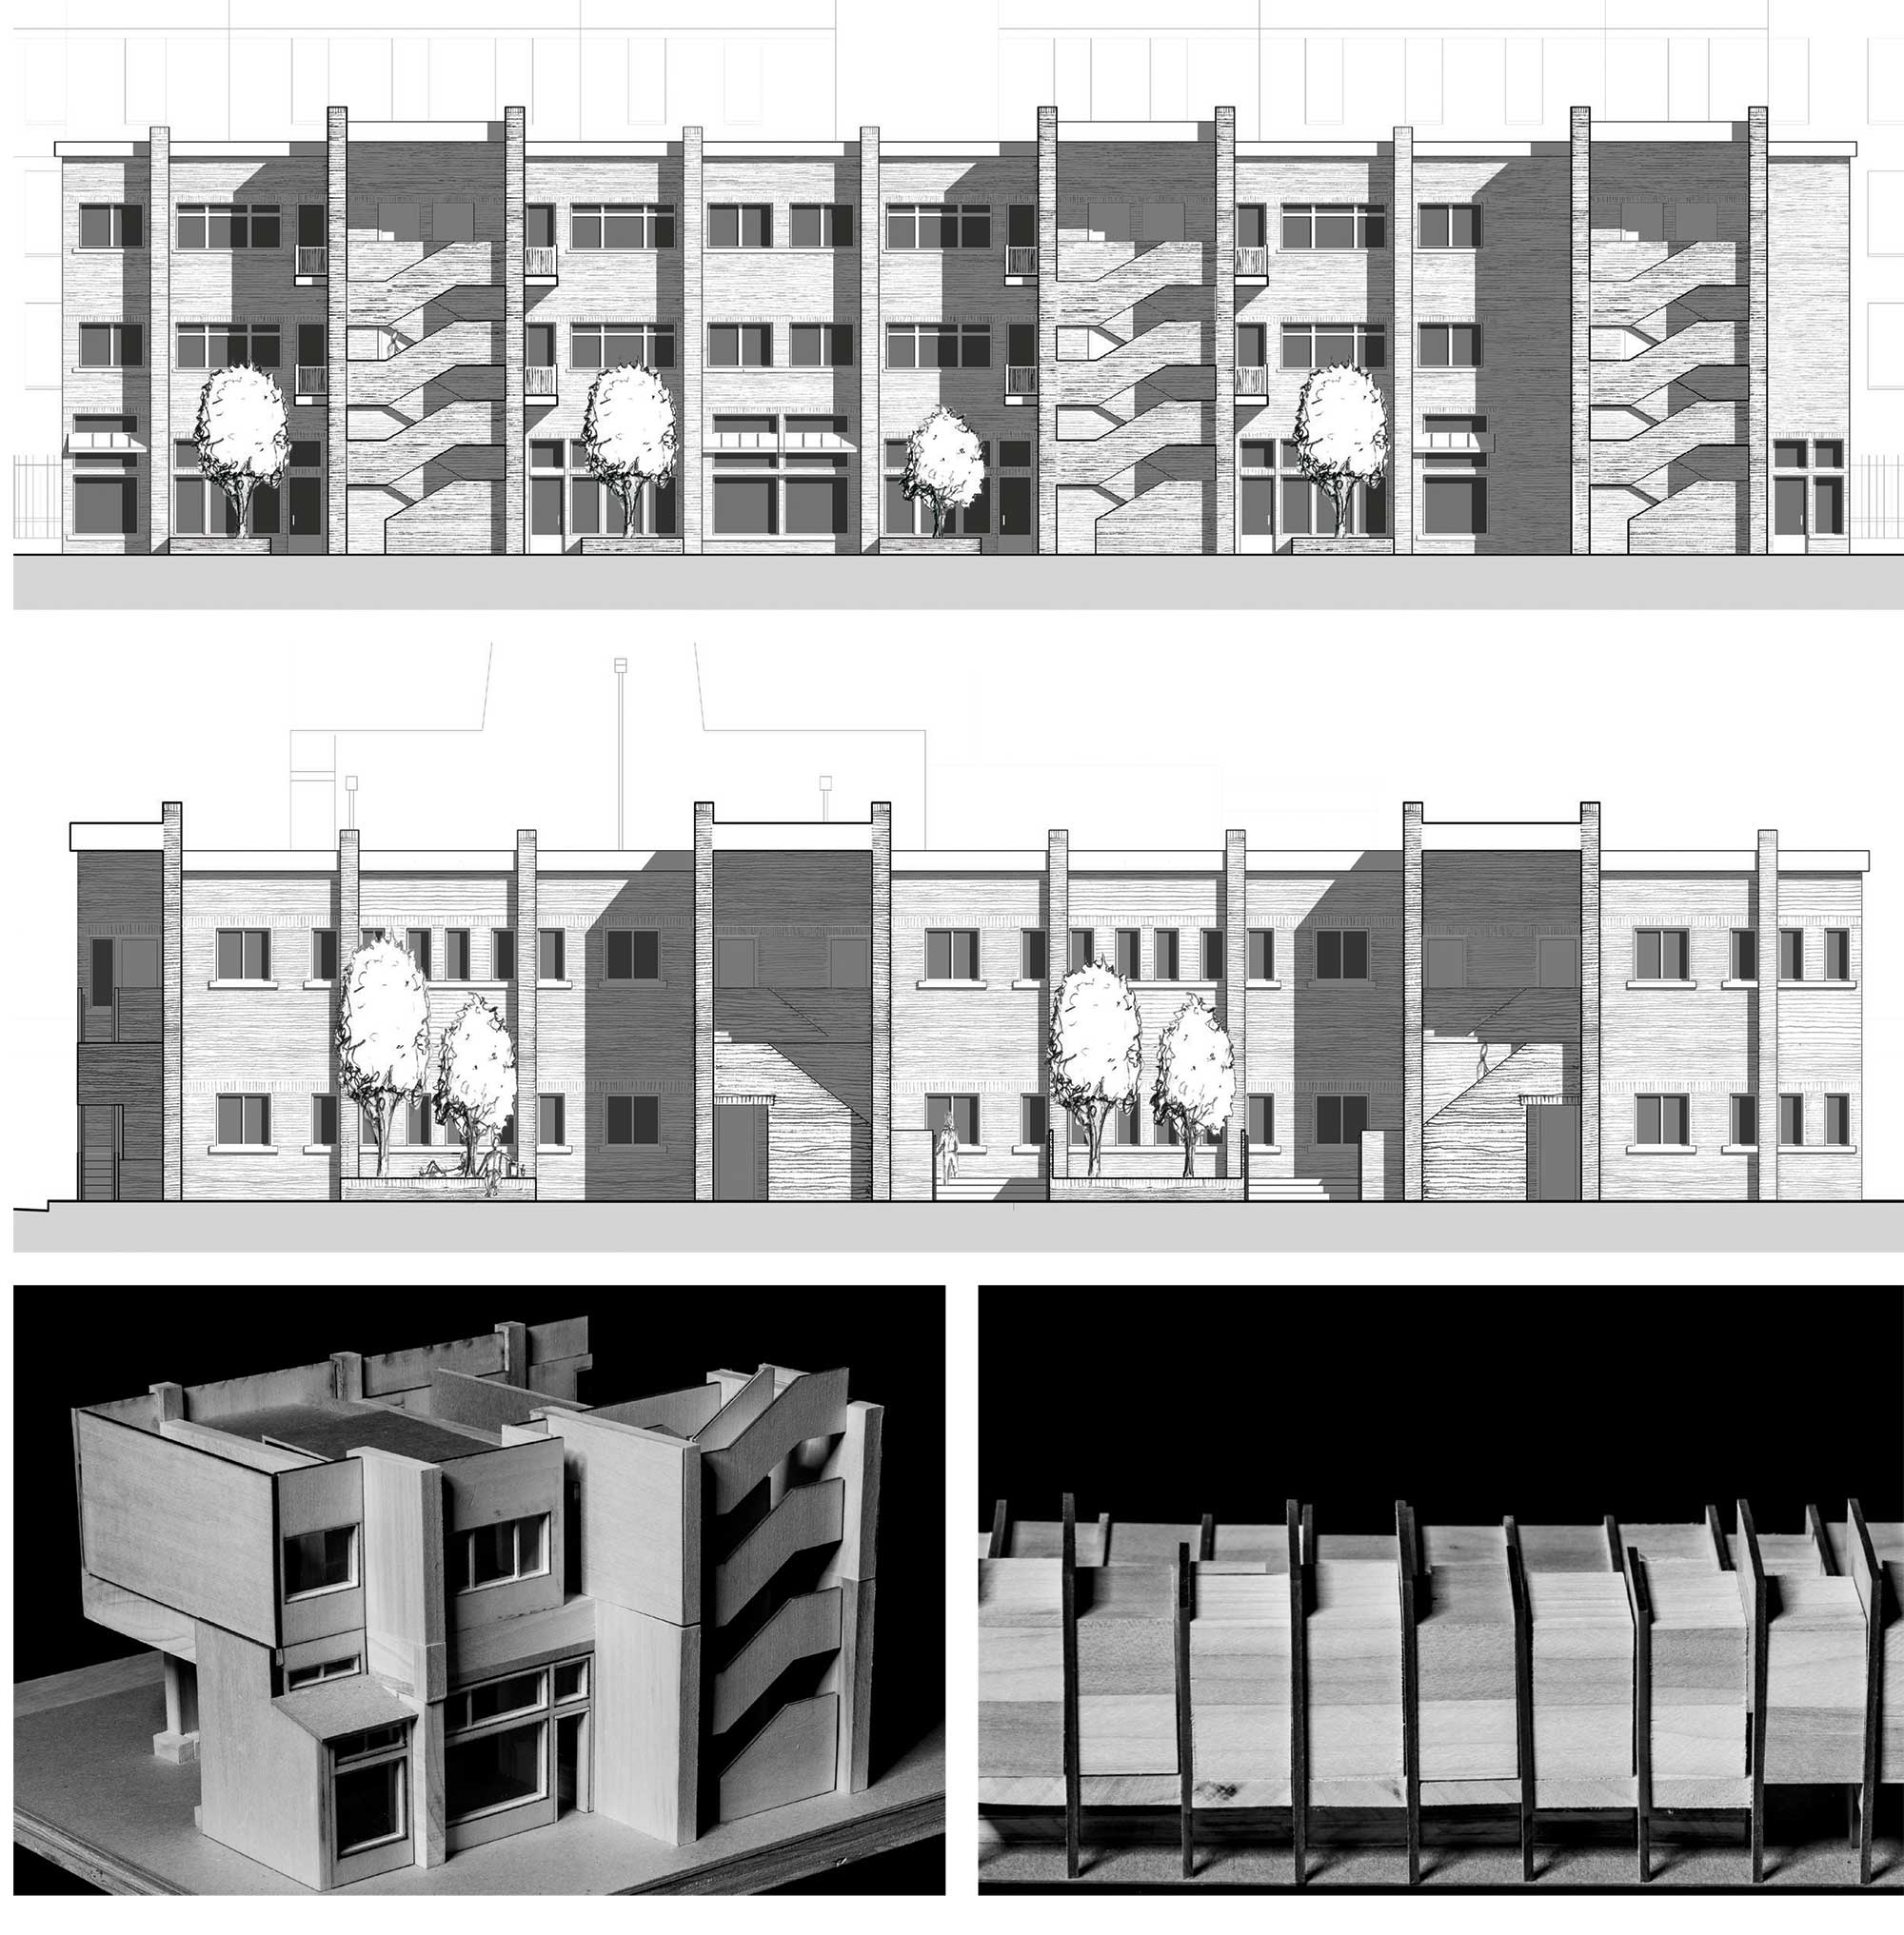 Matthew Lewis: Multi-Family Housing: Chicago IL – elevations, unit model, and massing model